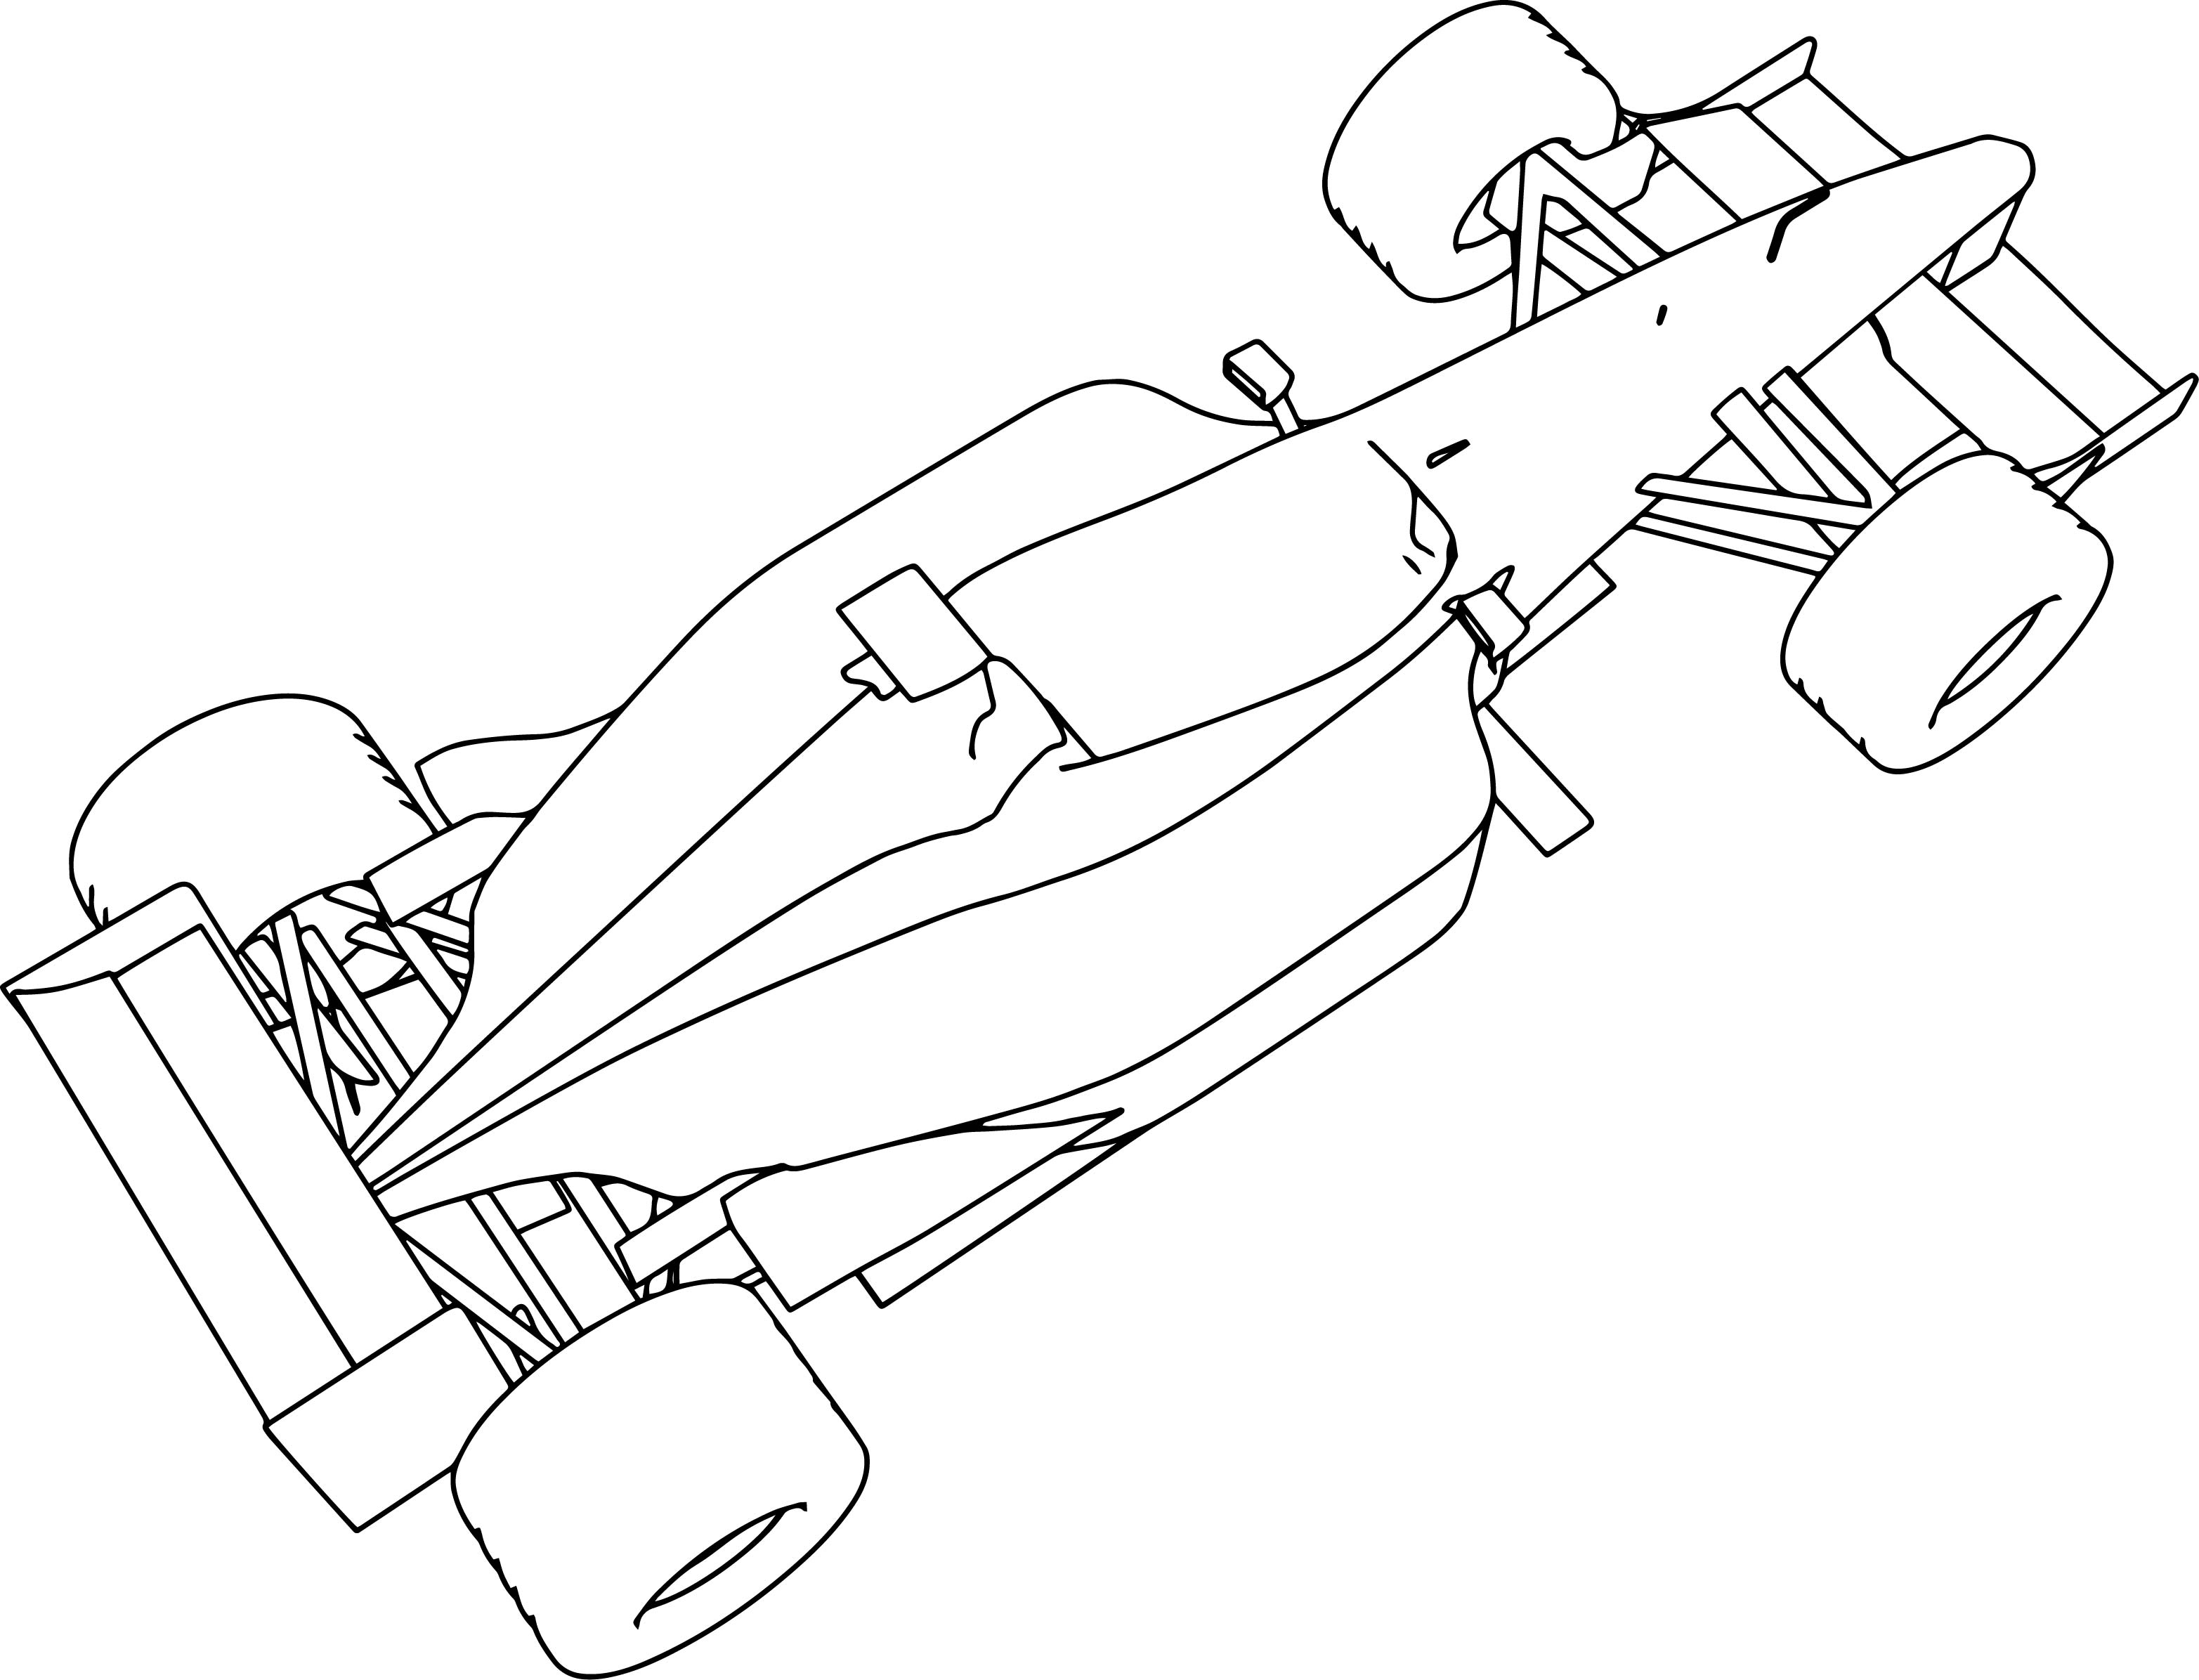 f1 williams 2001 formula sport car coloring page